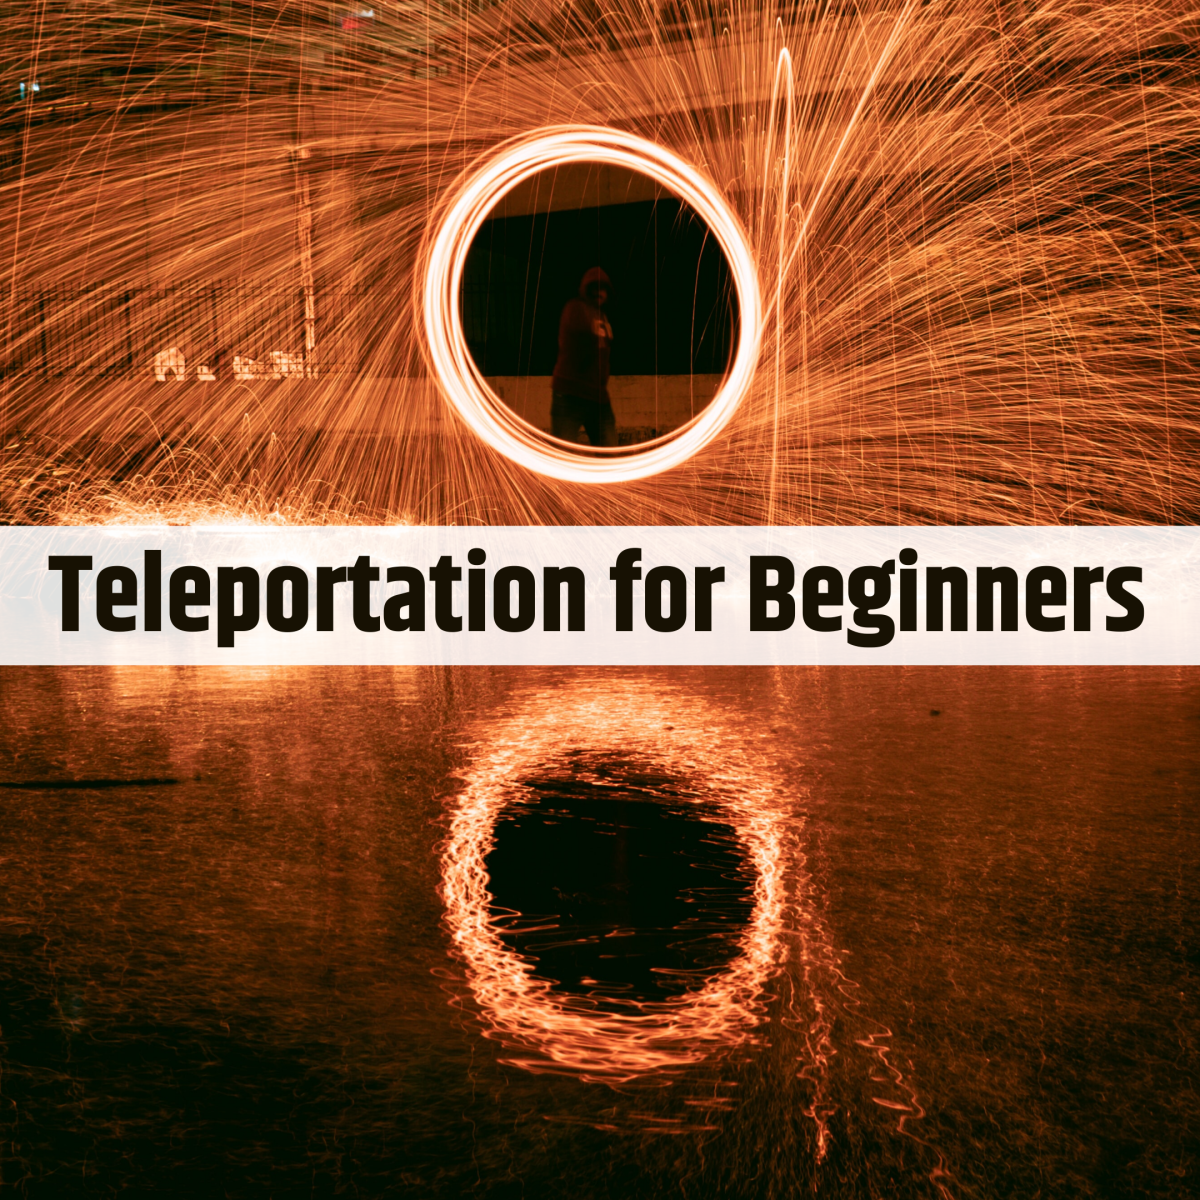 How to Teleport: Teleportation for Beginners